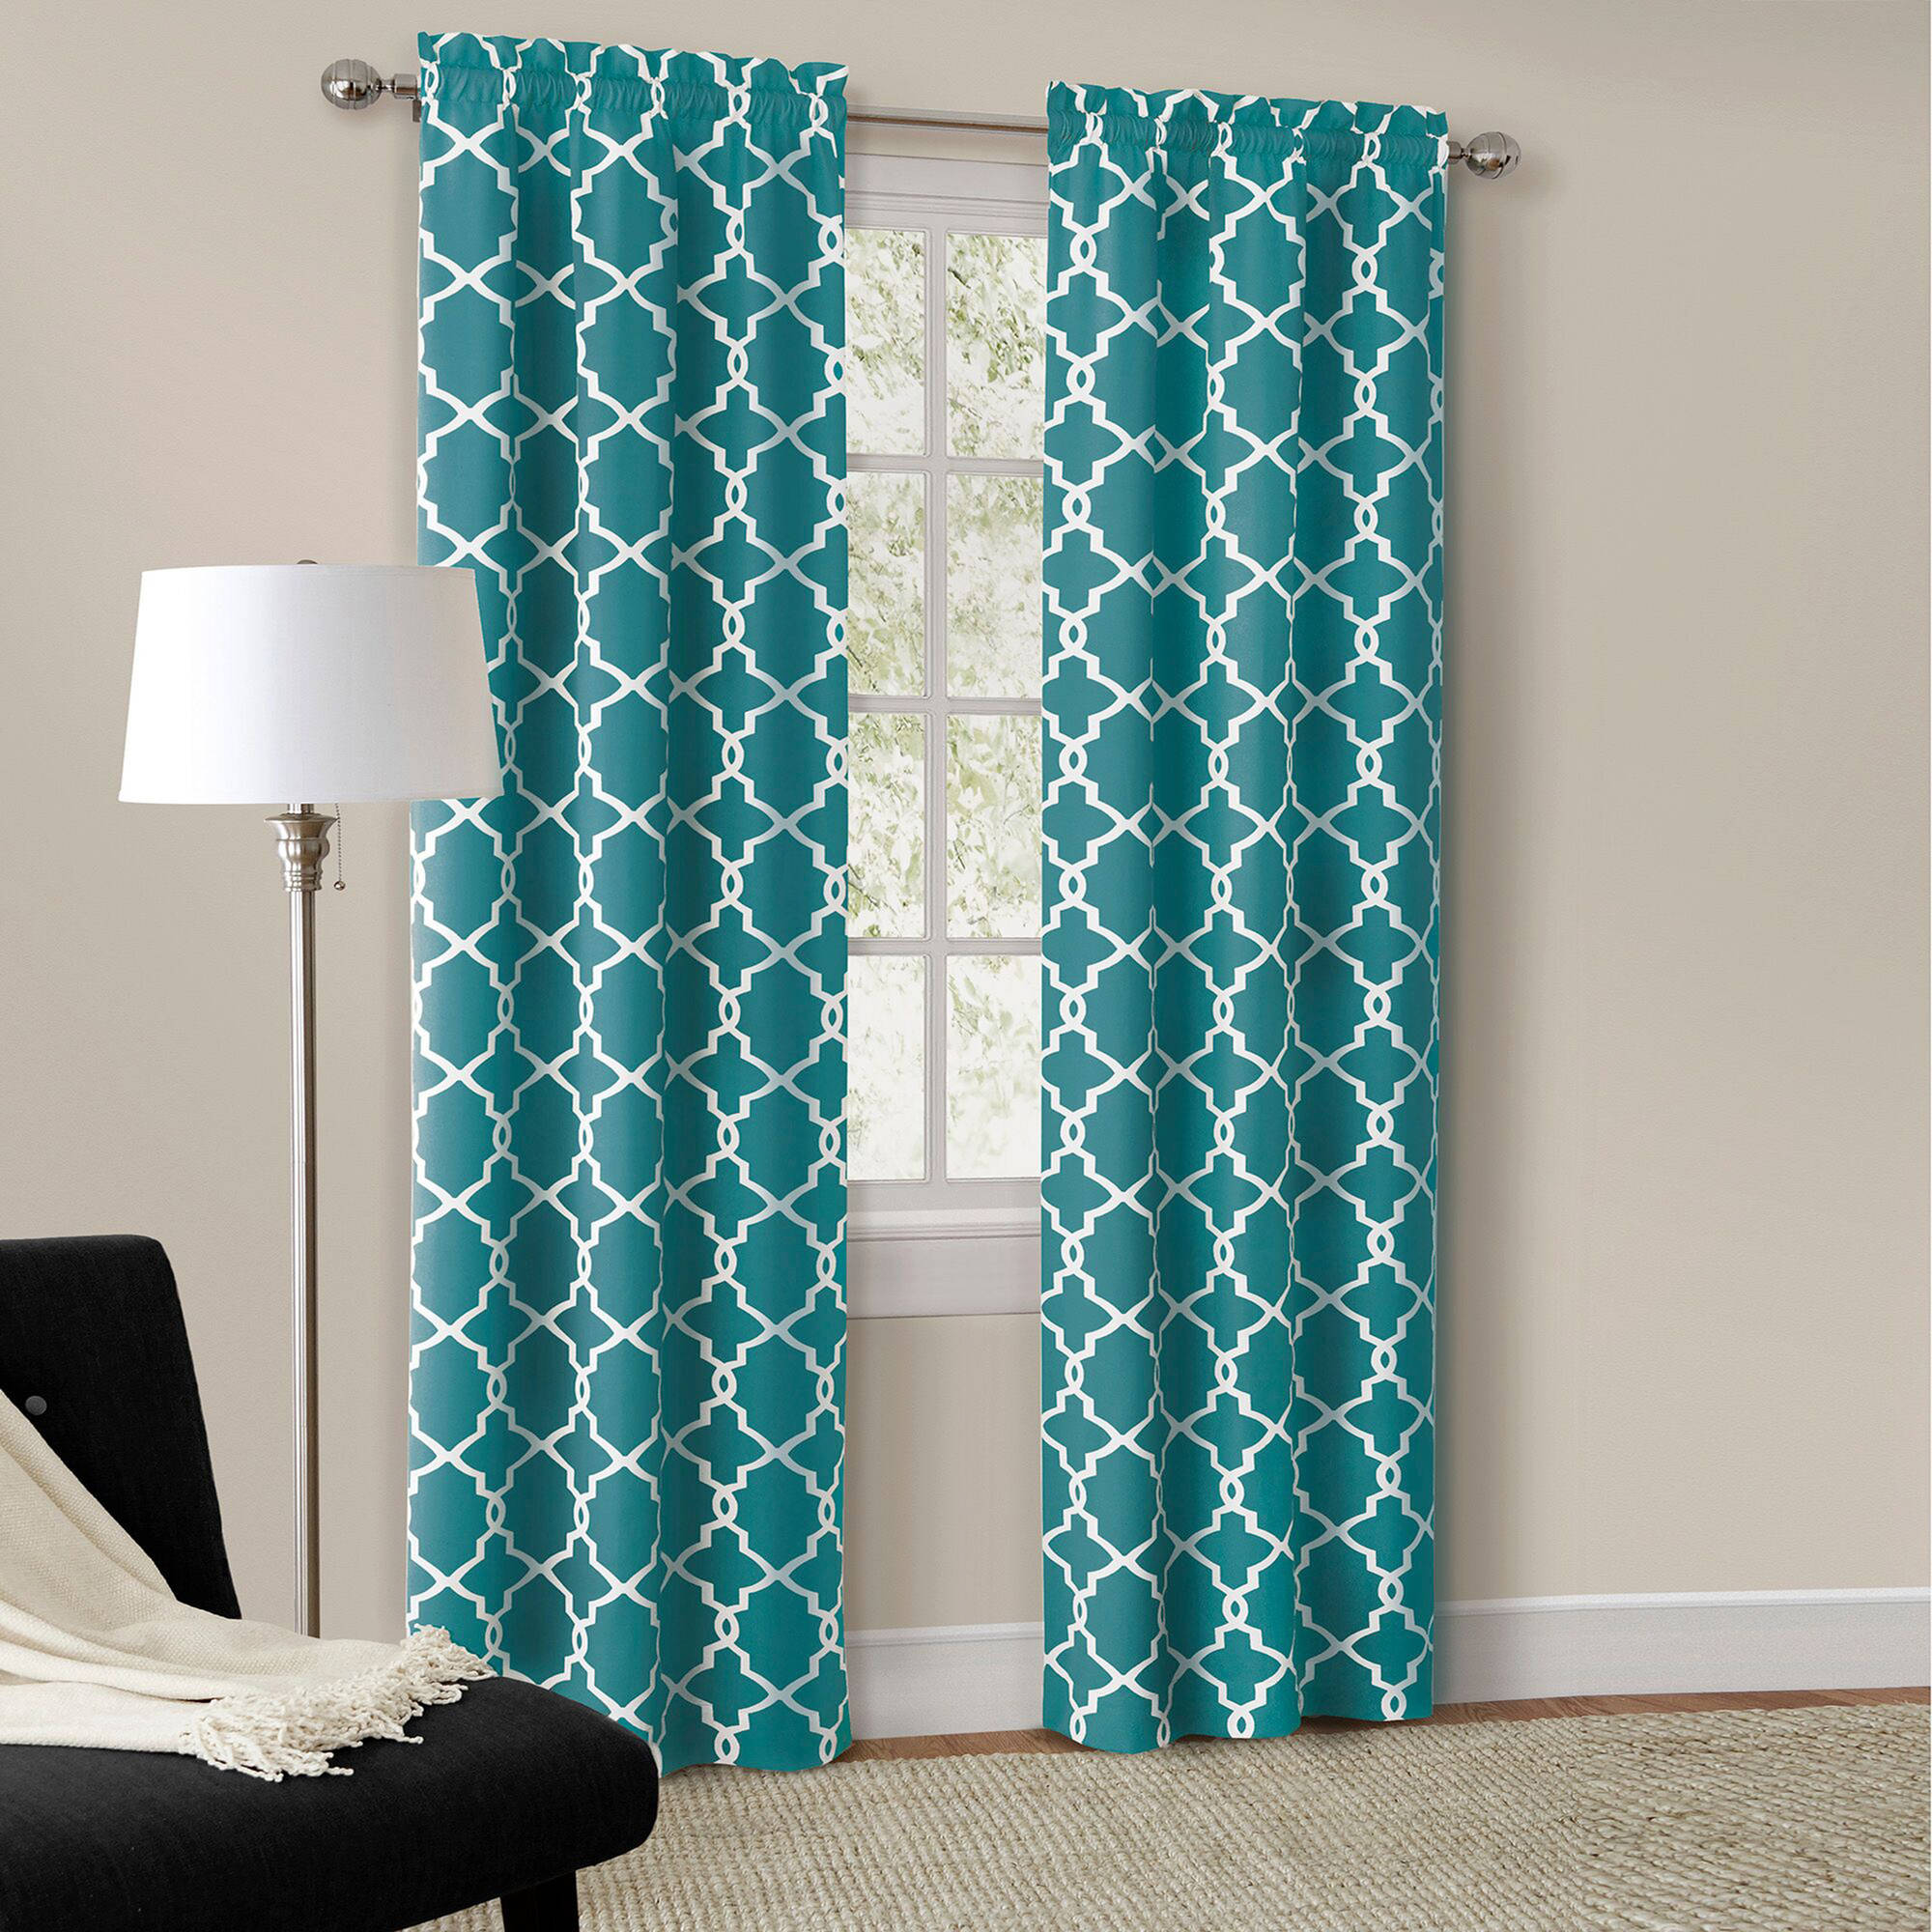 Walmart Curtains For Living Room Mainstays Calix Fashion Window Curtain Set Of 2  Walmart